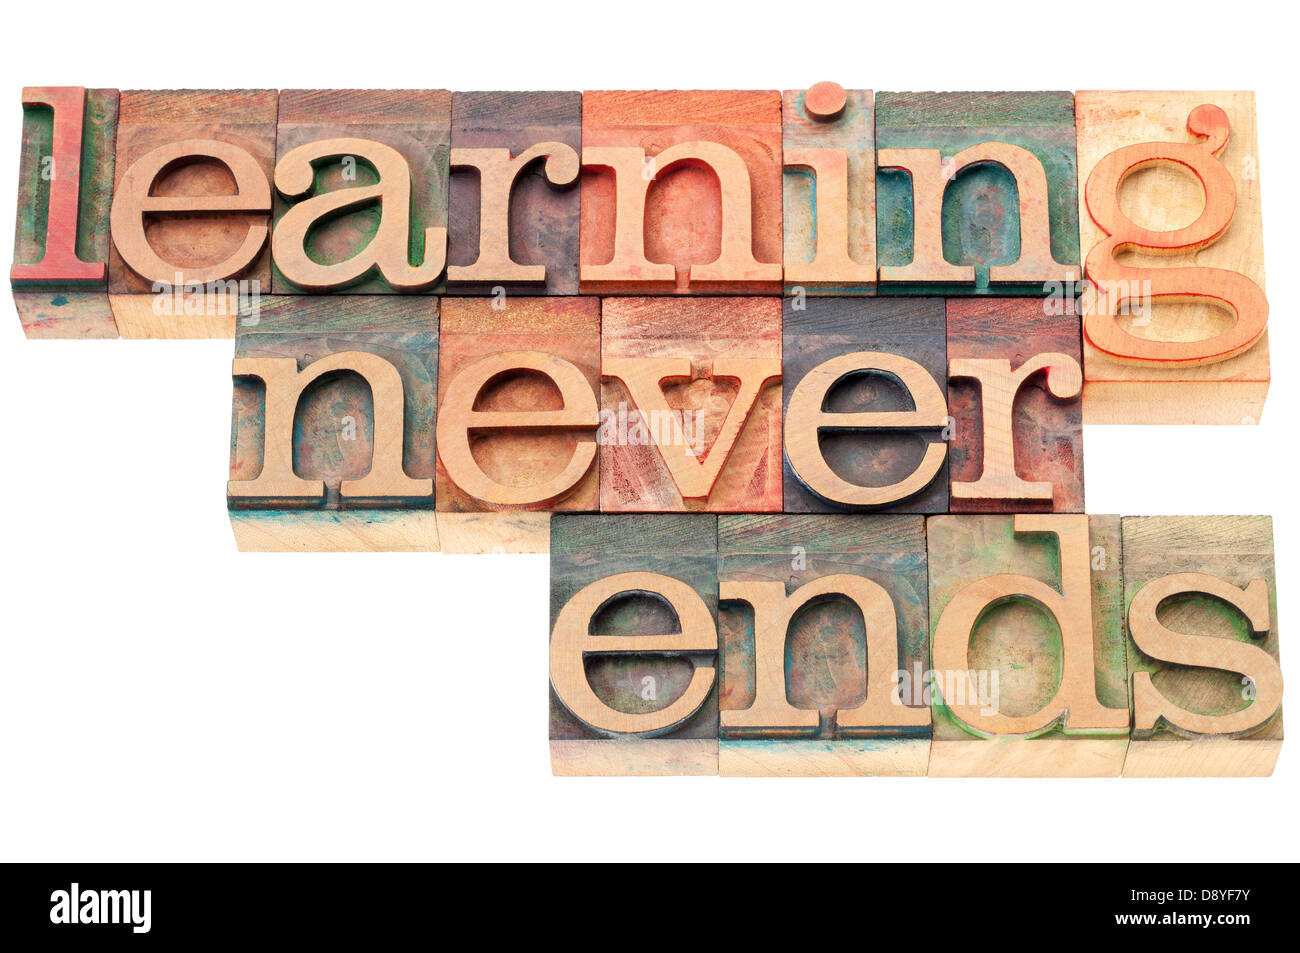 learning never ends - continuous education concept - isolated text in letterpress wood type - Stock Image